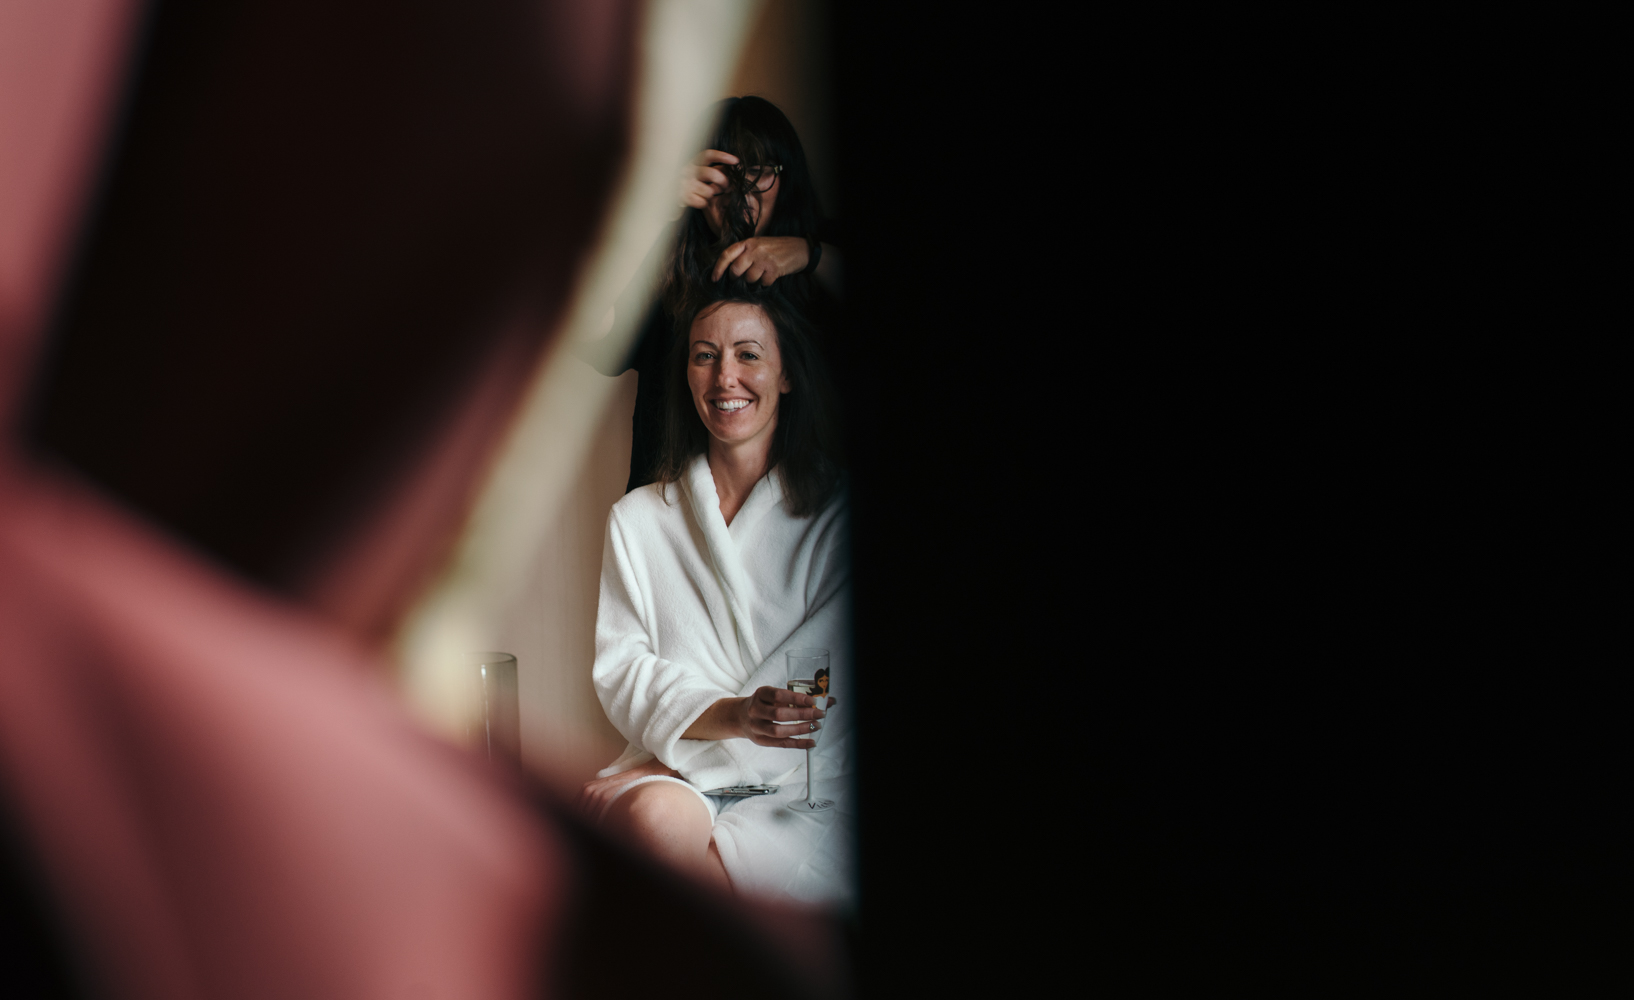 The bride Vicky having makeup and hair done during bridal preparations